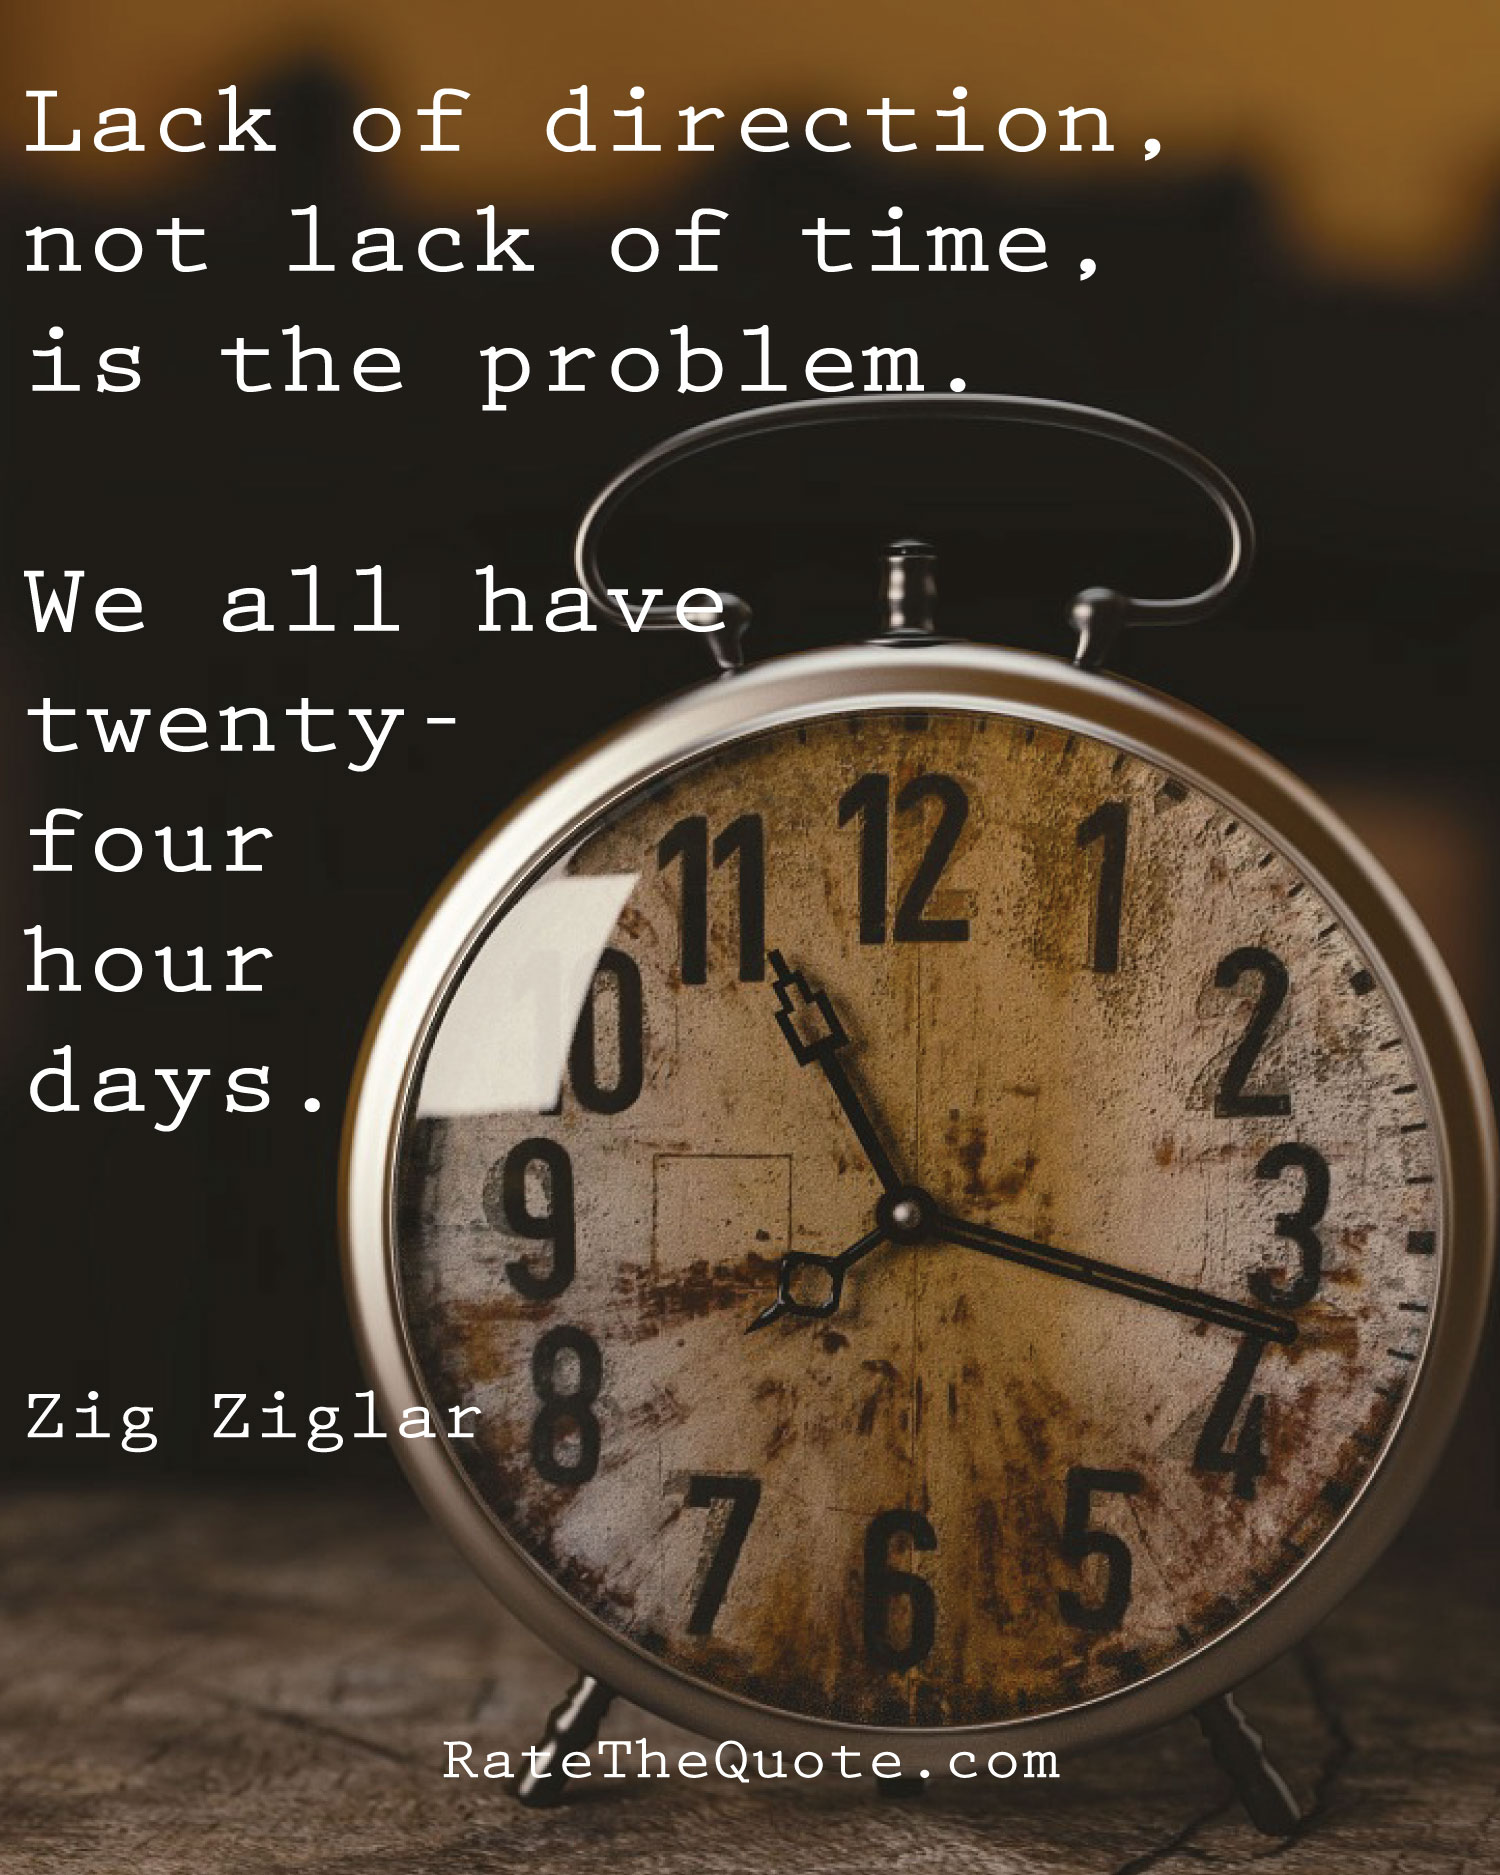 Lack of direction, not lack of time, is the problem. We all have twenty-four hour days. Zig Ziglar